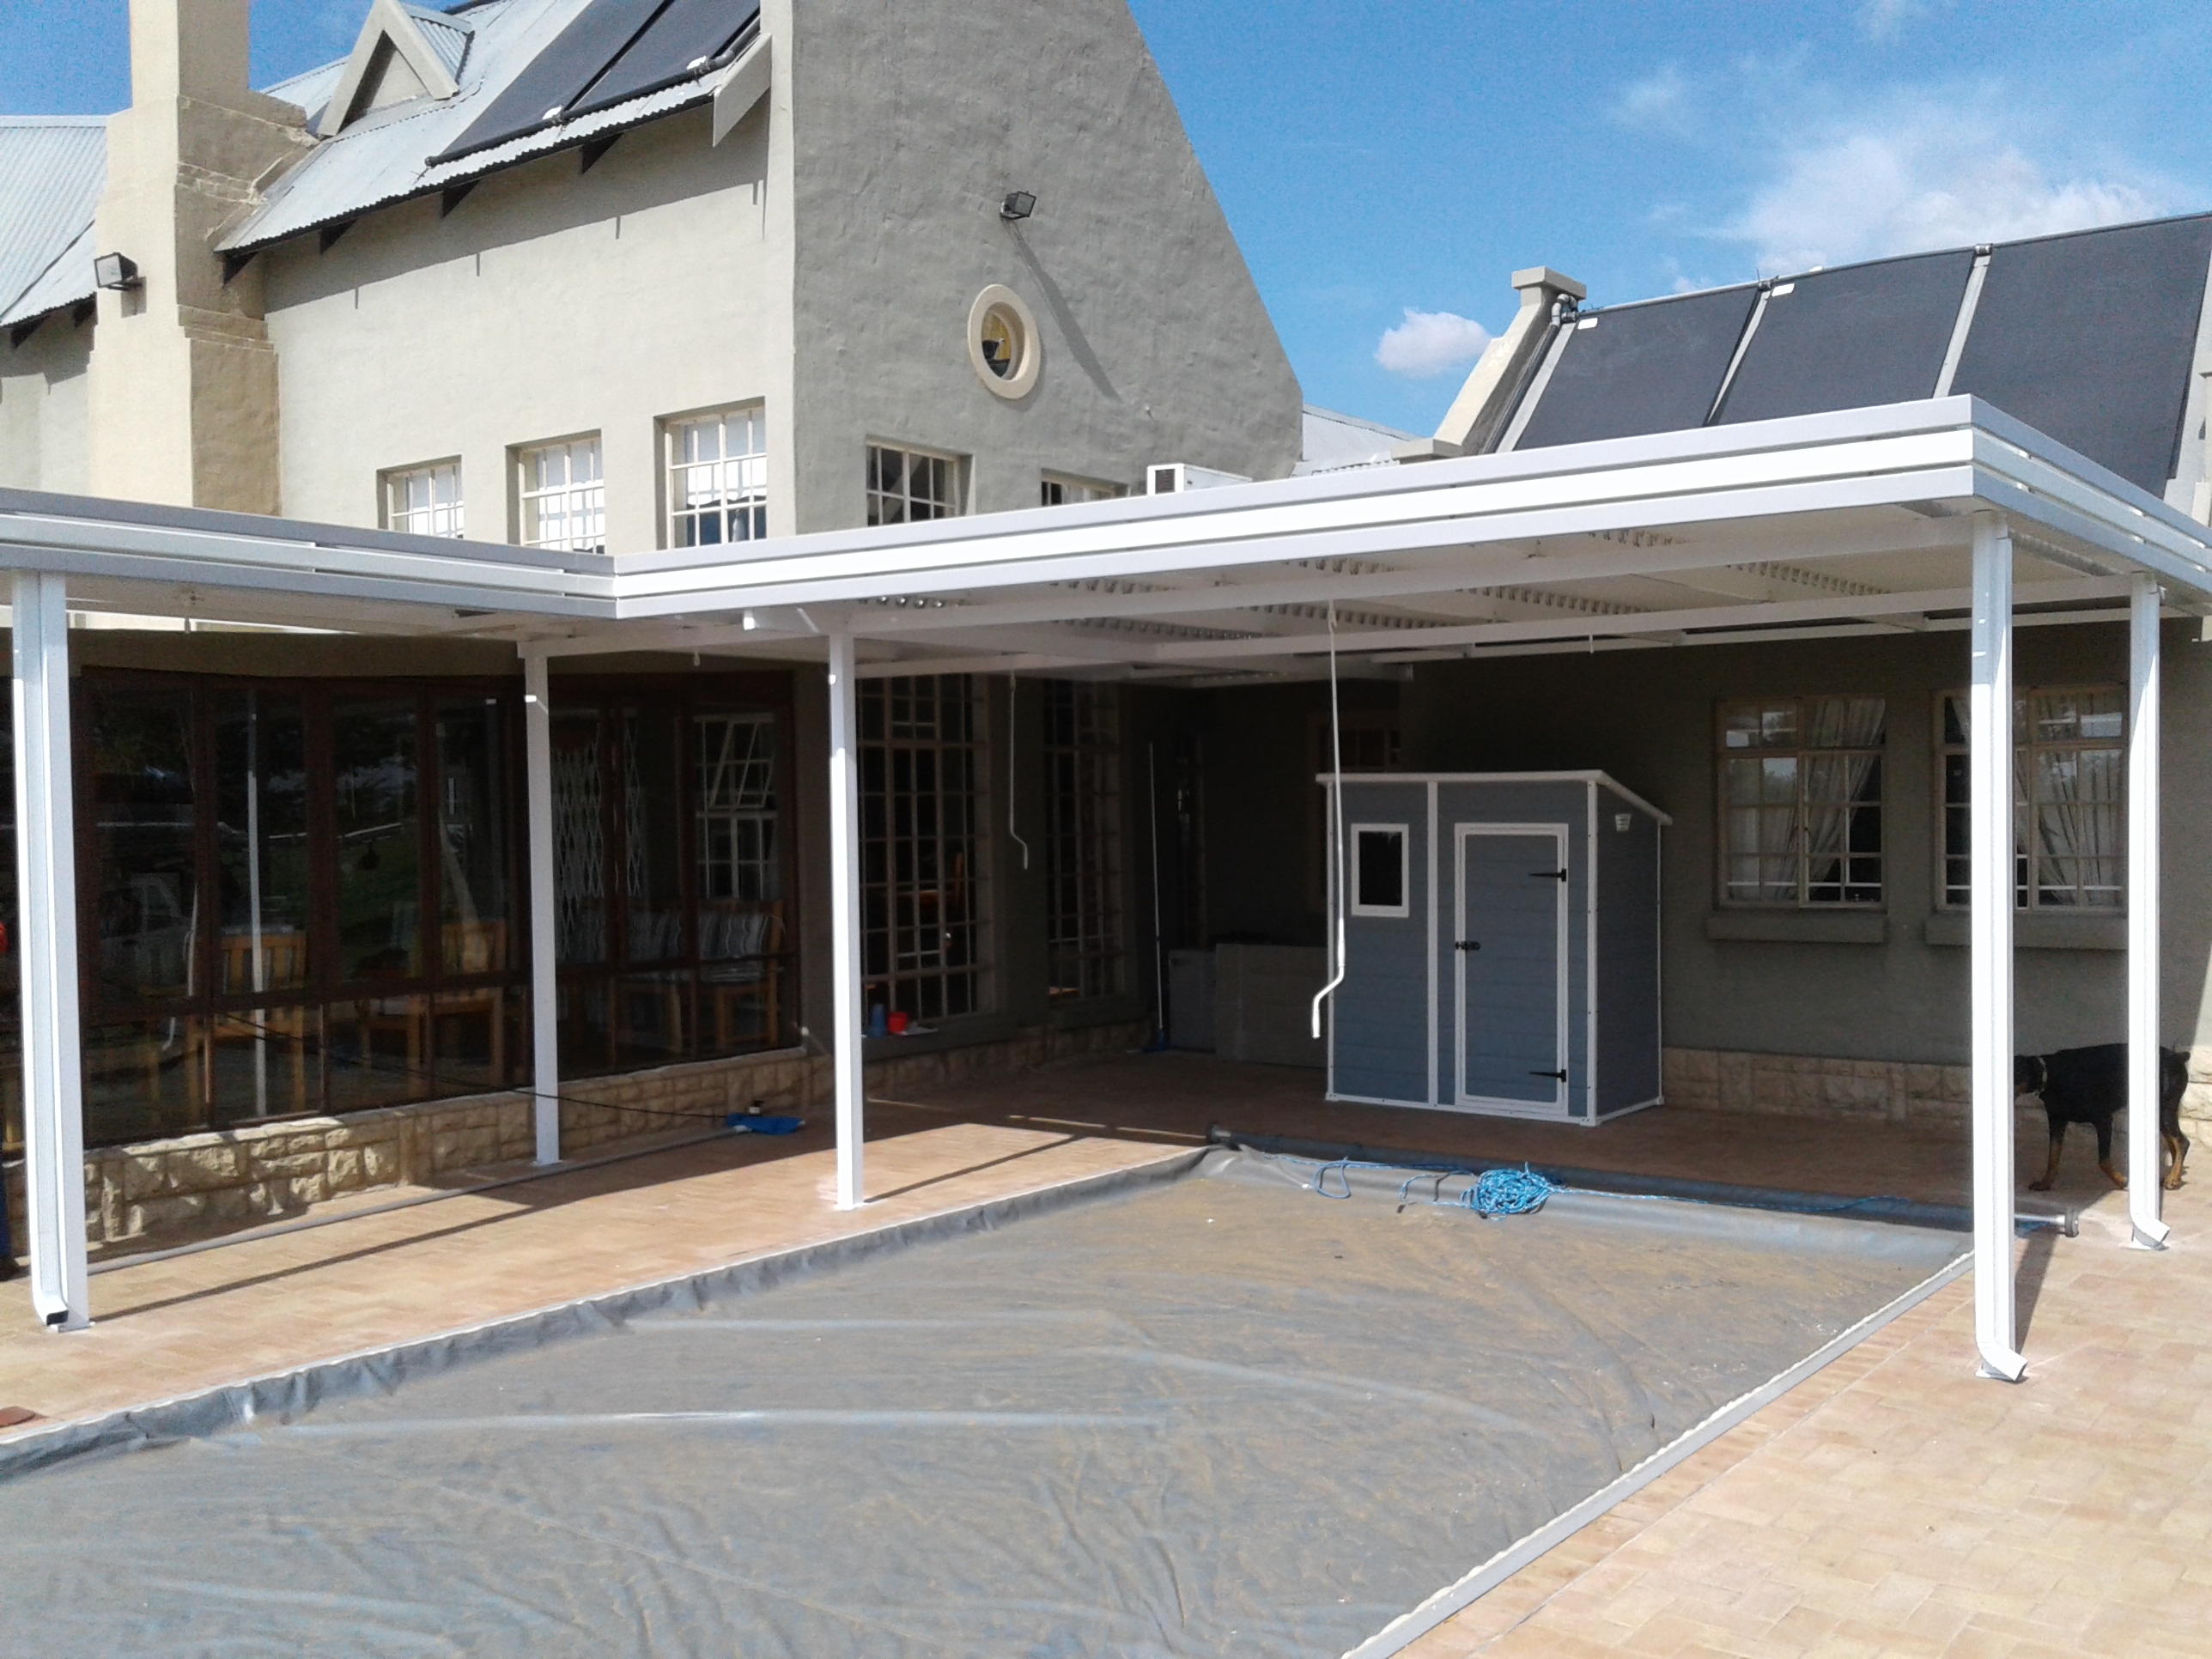 Awnings Johannesburg Canopy And Awning Specialists K4a intended for proportions 2576 X 1932